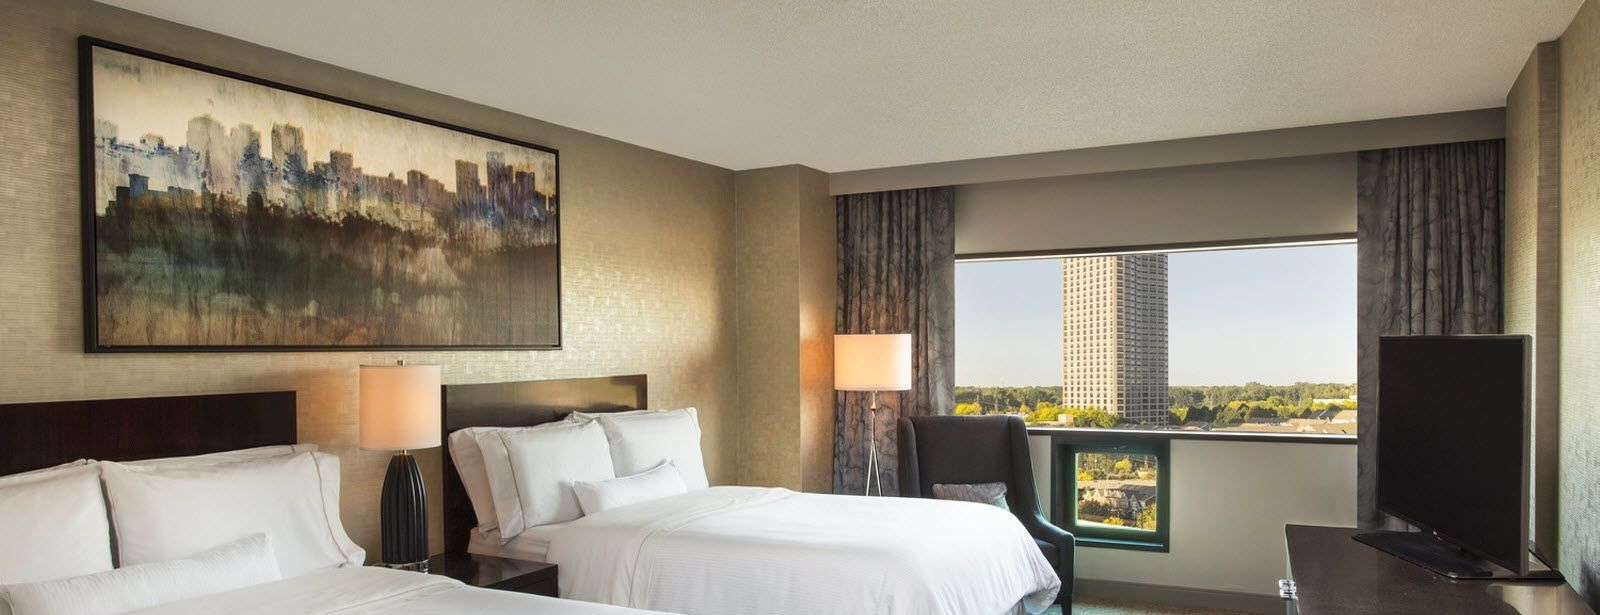 Executive Double Bed Guest Room | The Westin Southfield Detroit